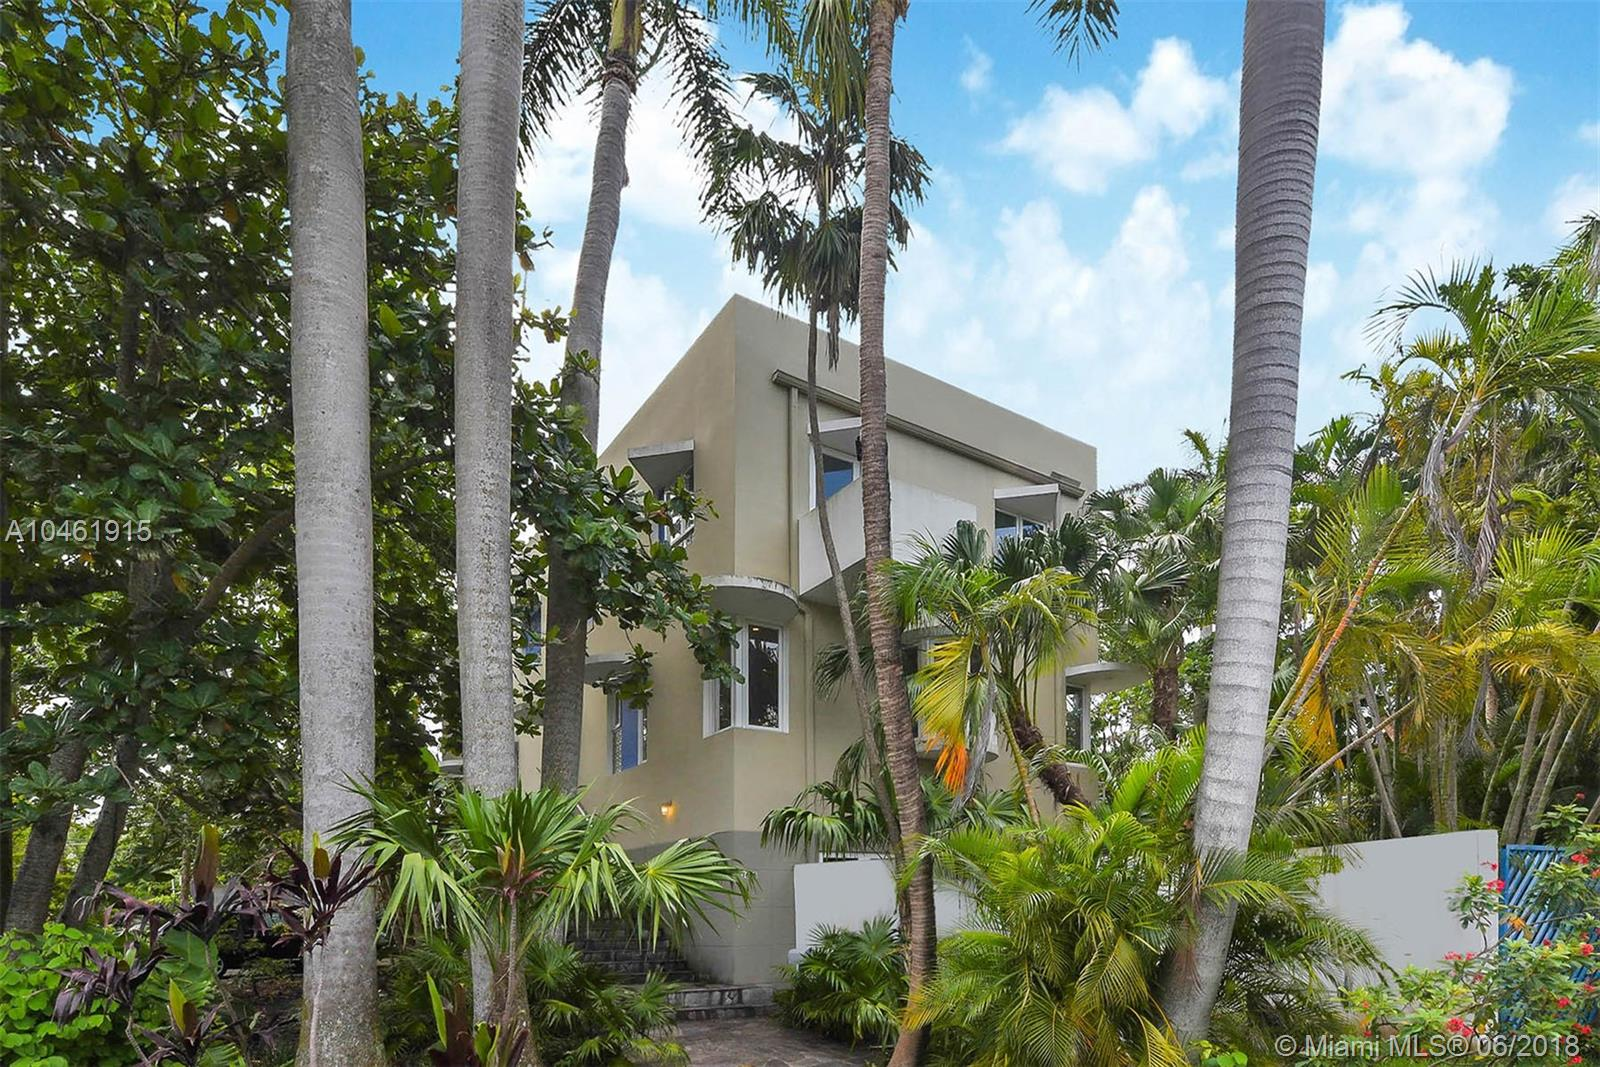 This energetic work of art is located in the prestigious gated community, Entrada Estates in Coconut Grove. Completely updated including top of line appliances, custom solid wood cabinetry and vanities and wood flooring. The three-story façade captures Florida's architectural legacy drawing on everything from the work of contemporary Miccosukee Indian craftsmen to indigenous folk art. This private waterfront community shares inlet w/ docks & clay tennis court conveniently located steps from the property.Two car garage w/ storage & room for a pool. Originally designed as Arquitectonica'sfamily home this is a must see if you are currently looking to buy in a gated oceanfront neighborhood w/ 24/7 security guard.A short stroll to the Grove's shops, restaurants, best schools and activities.